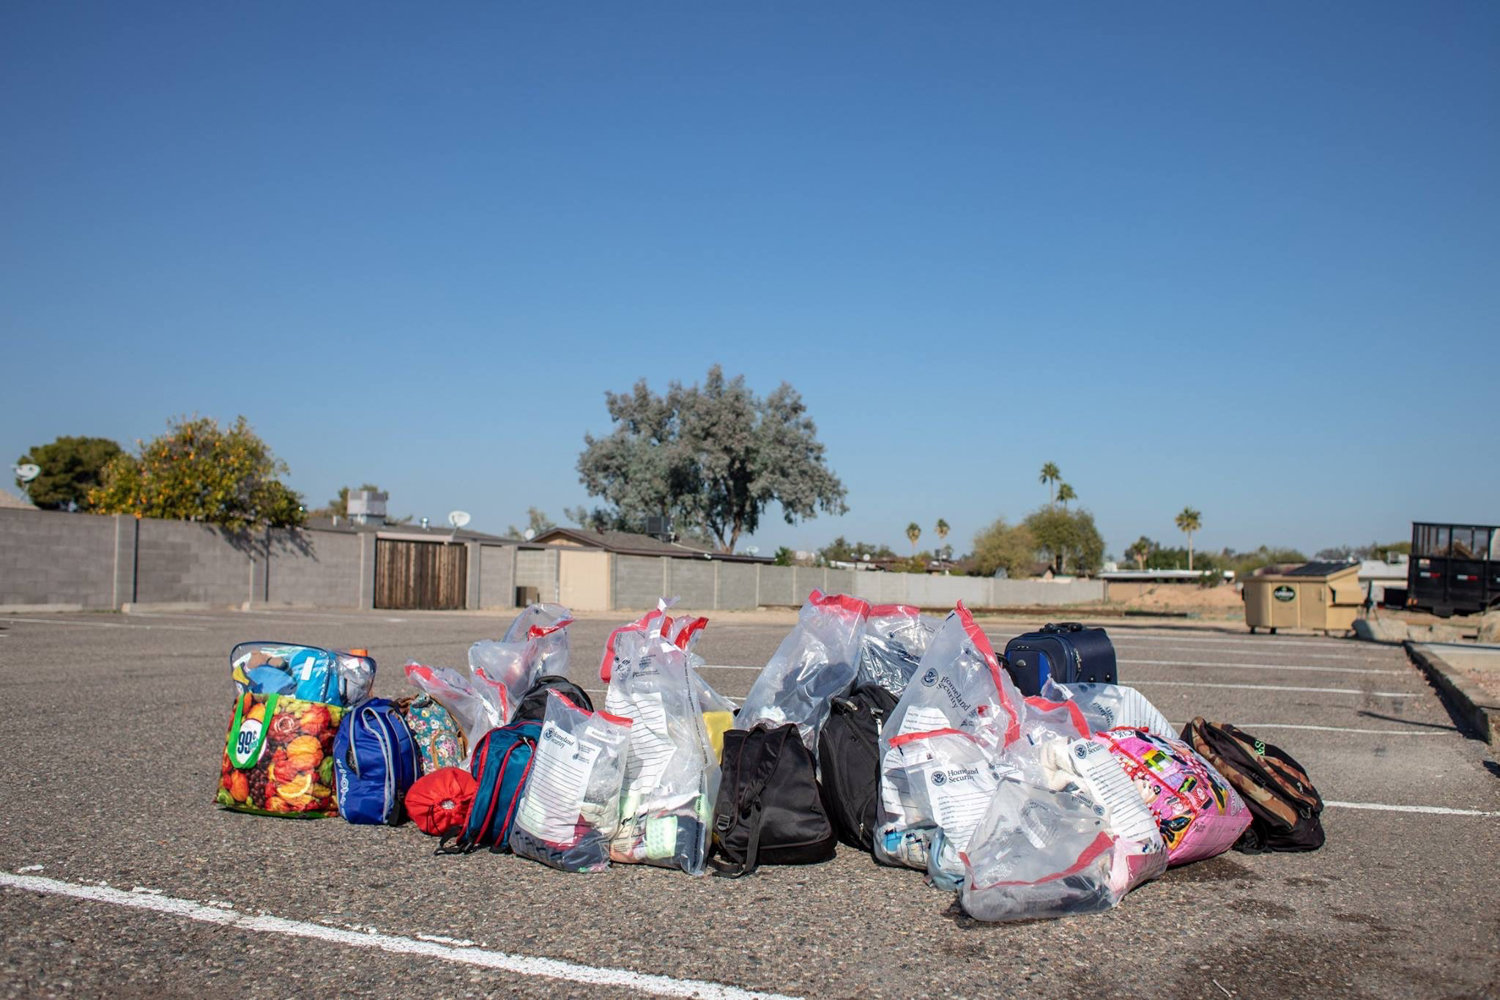 The belongings of undocumented immigrants rest on the ground during a January trip Marti Michael made to the U.S. southern border in Arizona.